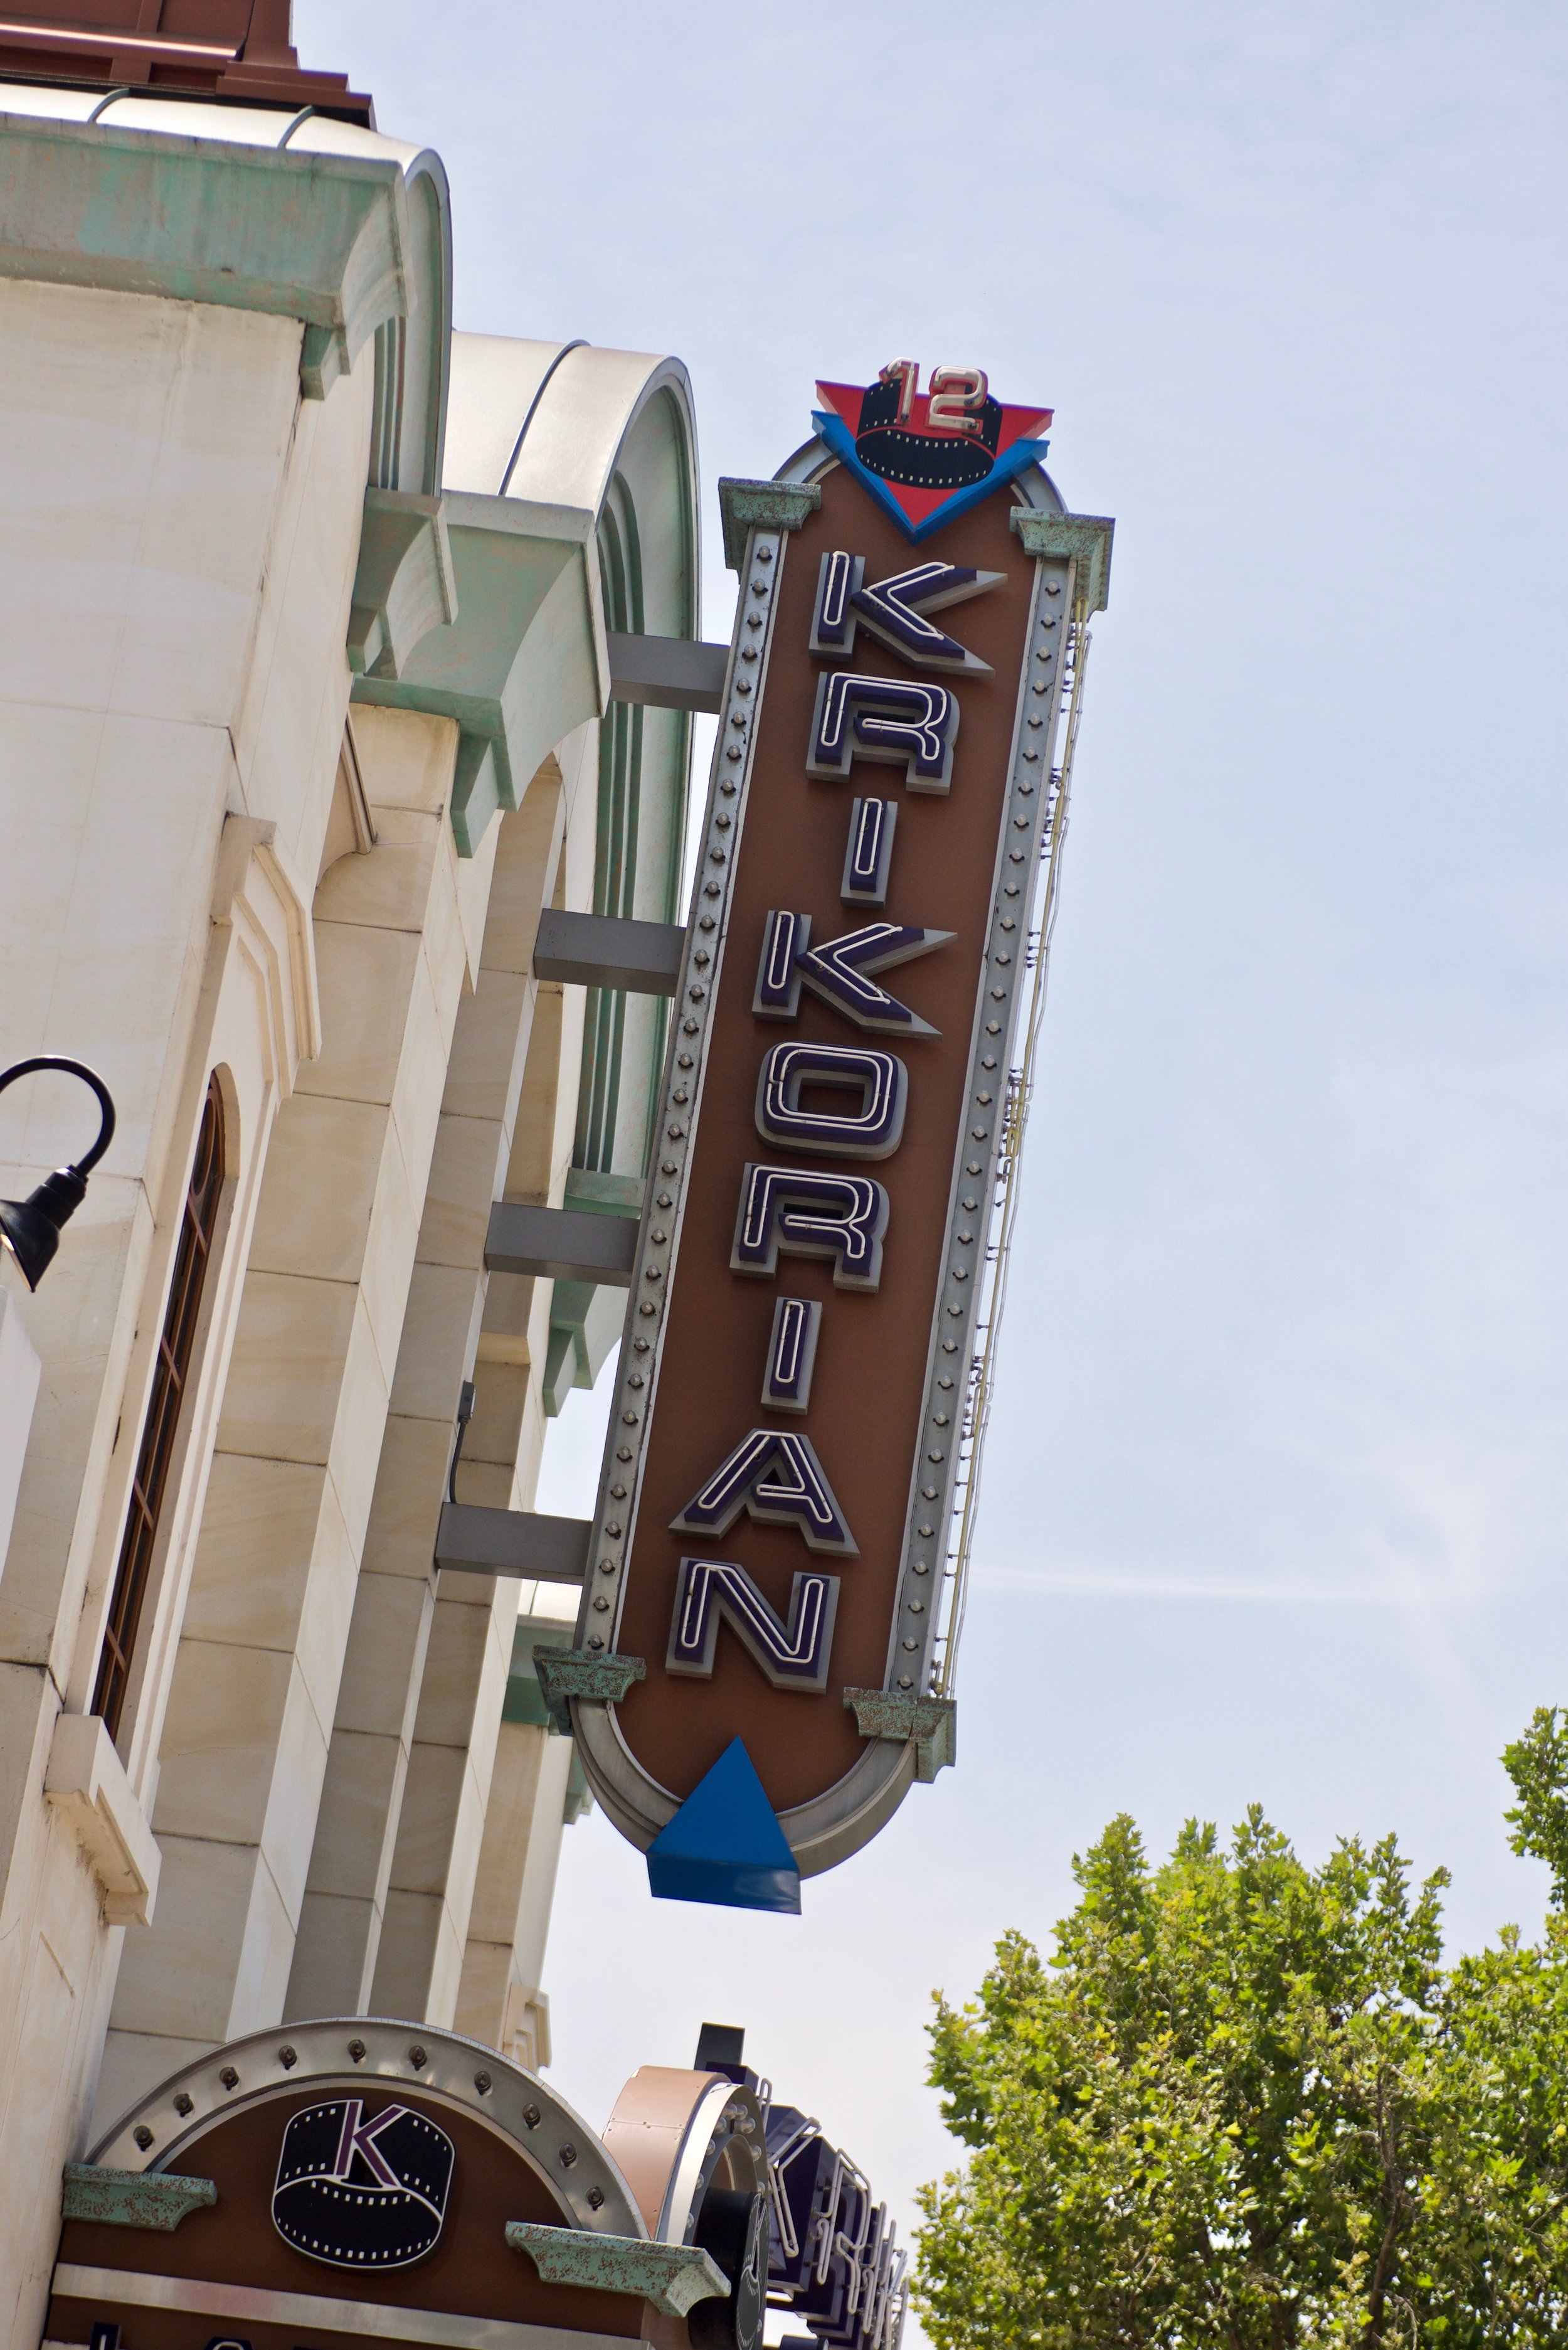 The Krikorian - 12 Screen Movie Theater